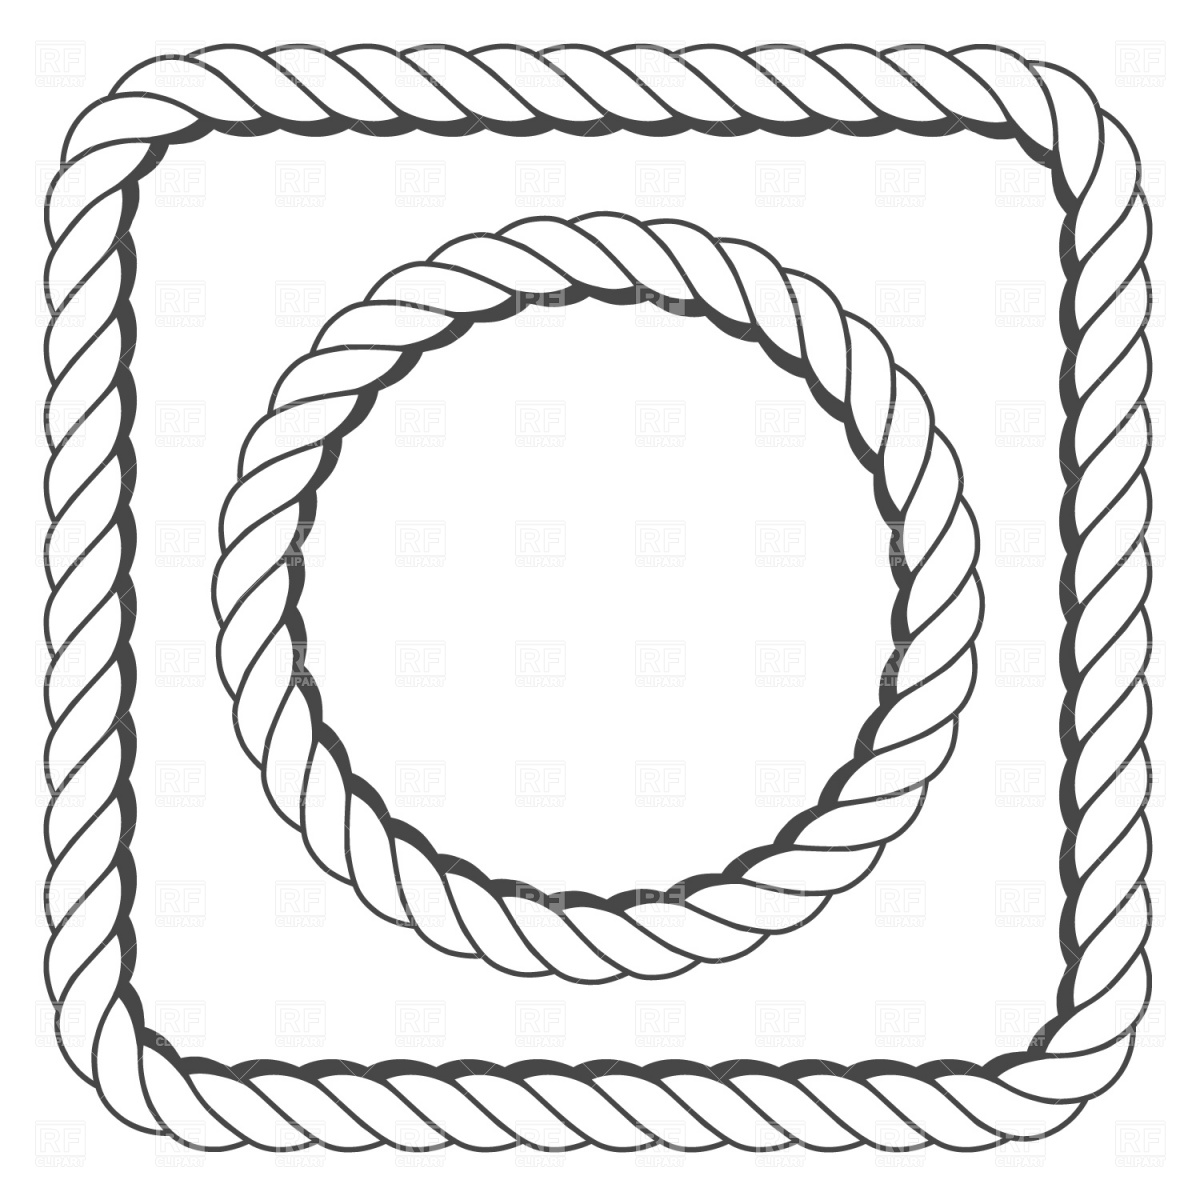 Rope Clipart Eps.